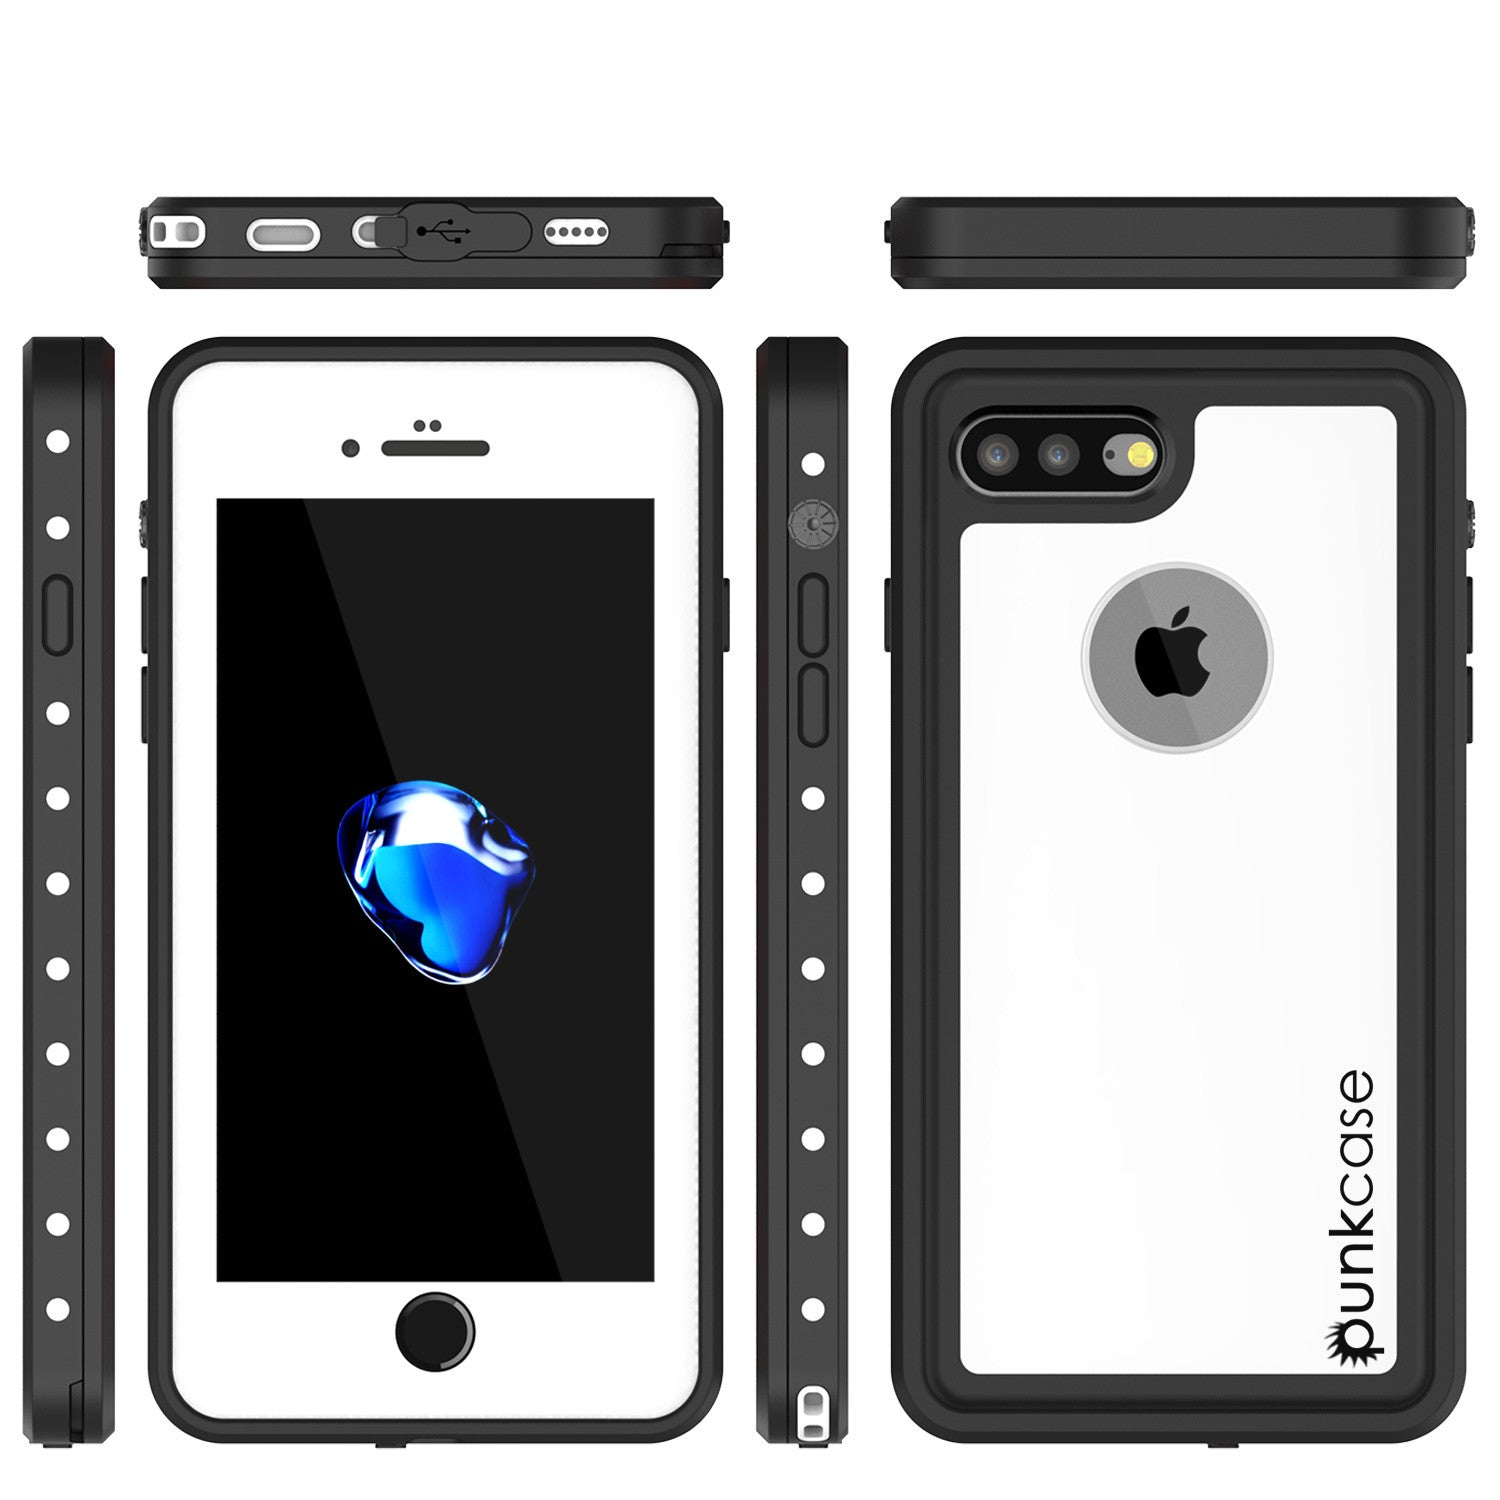 iPhone 7+ Plus Waterproof IP68 Case, Punkcase [White] [StudStar Series] [Slim Fit] [Dirtproof]